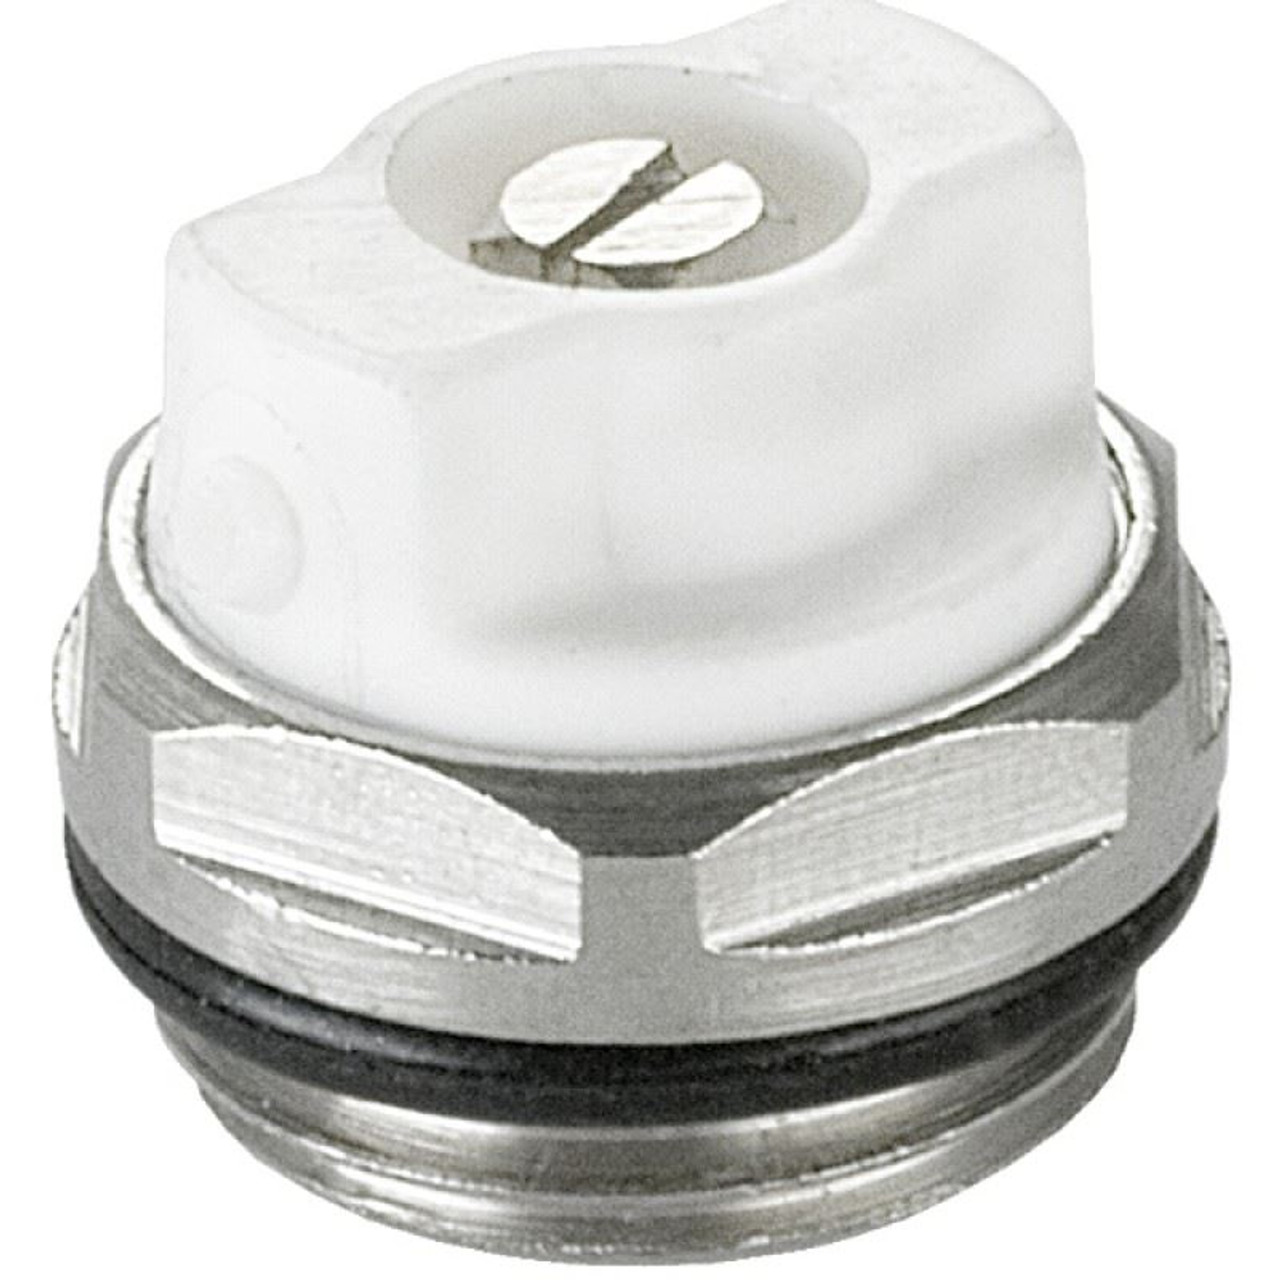 1/4 3/8 1/2 Inch Manual Radiator Air Vent Bleed Ending Cap Plug Key Valve